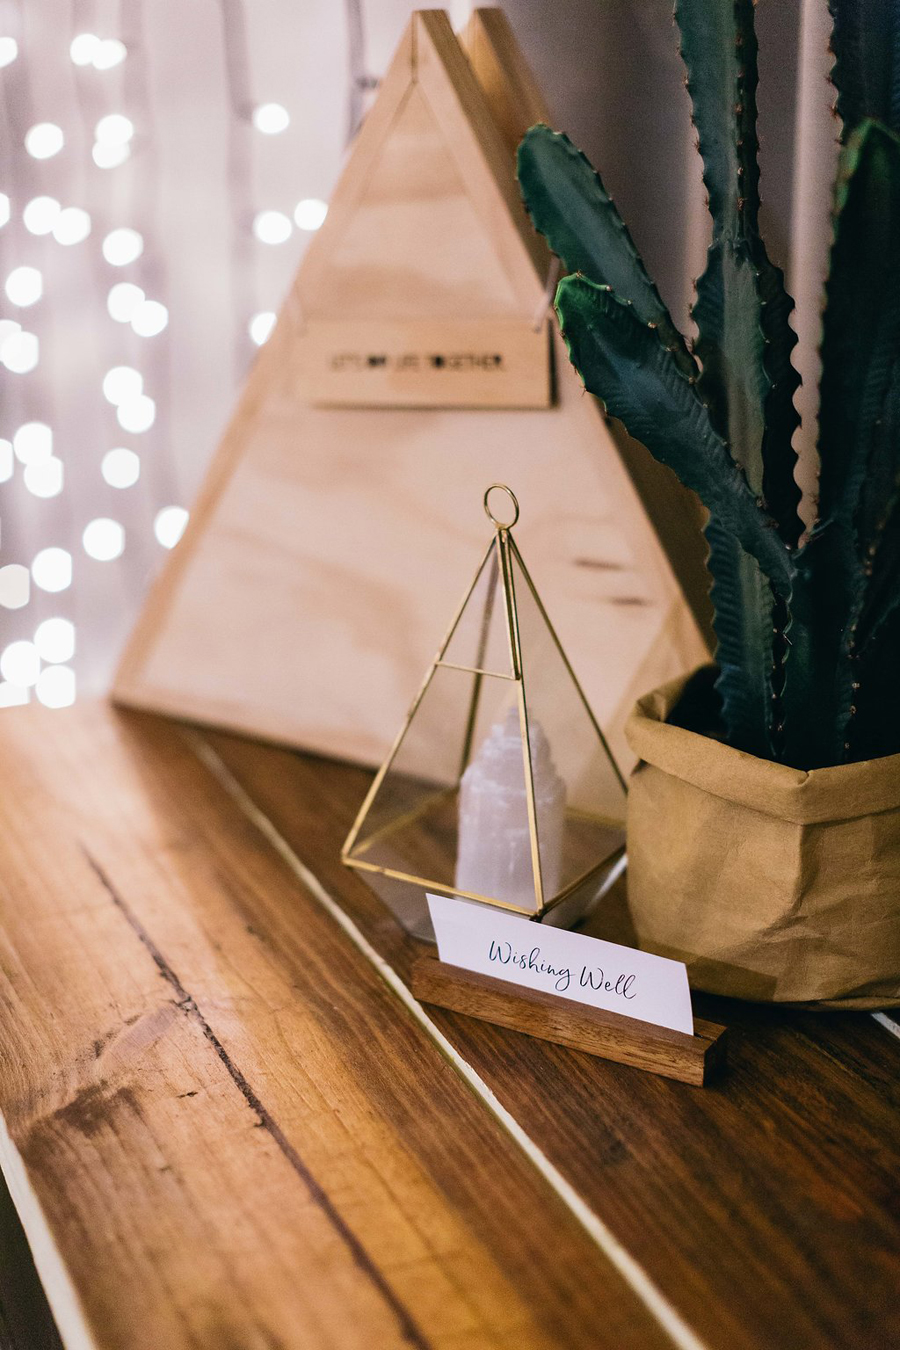 tweed-coast-weddings-wedding-venue-osteria-casuarina-figtree-pictures-photography-brittney-and-justin050.jpg